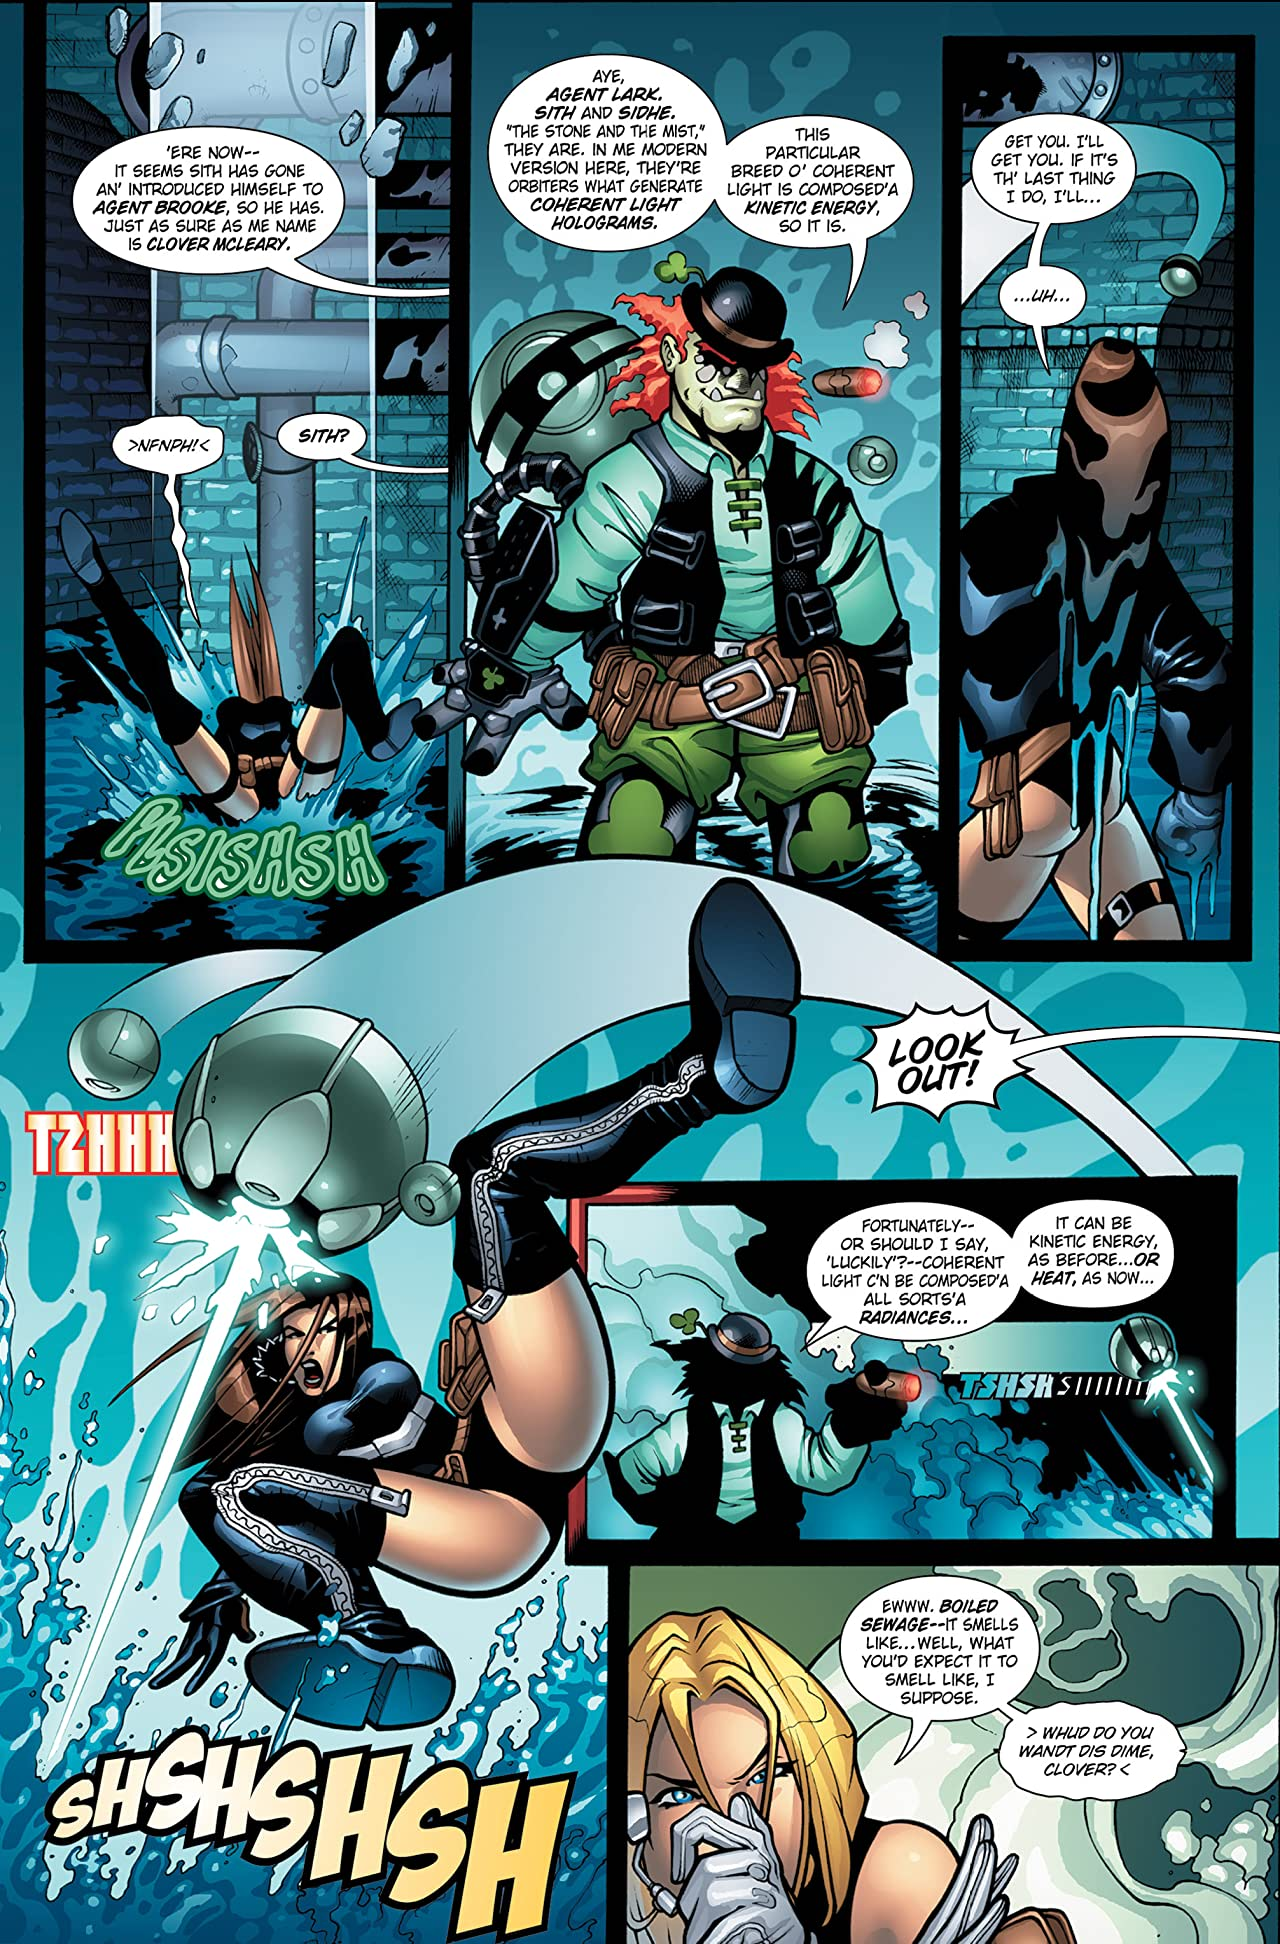 Victoria's Secret Service: Nemesis Rising #1 (of 5)